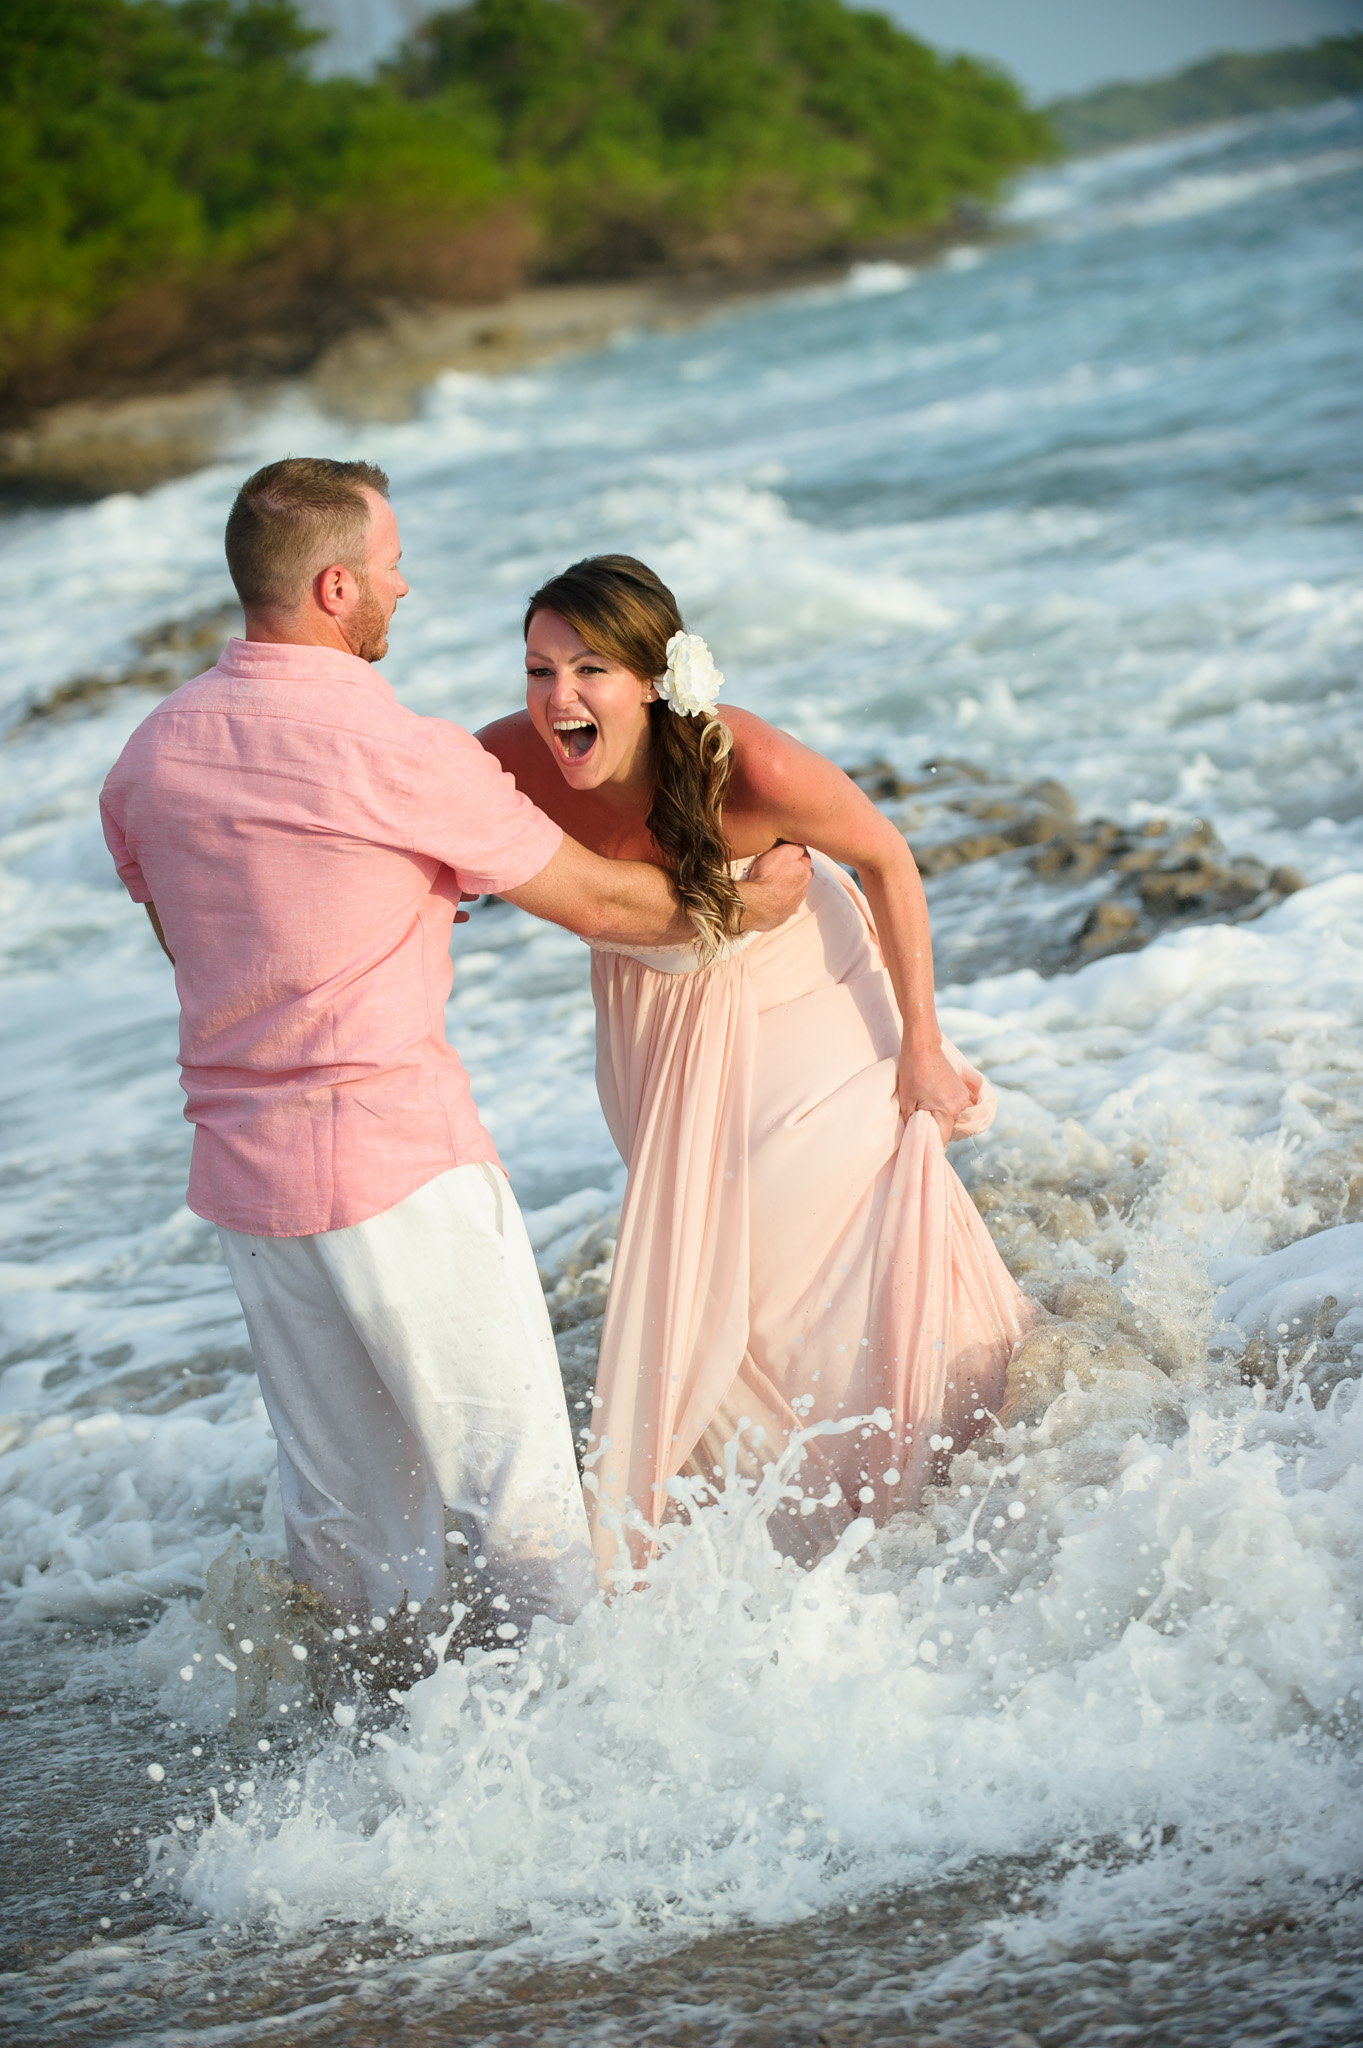 Best place to elope in Costa Rica